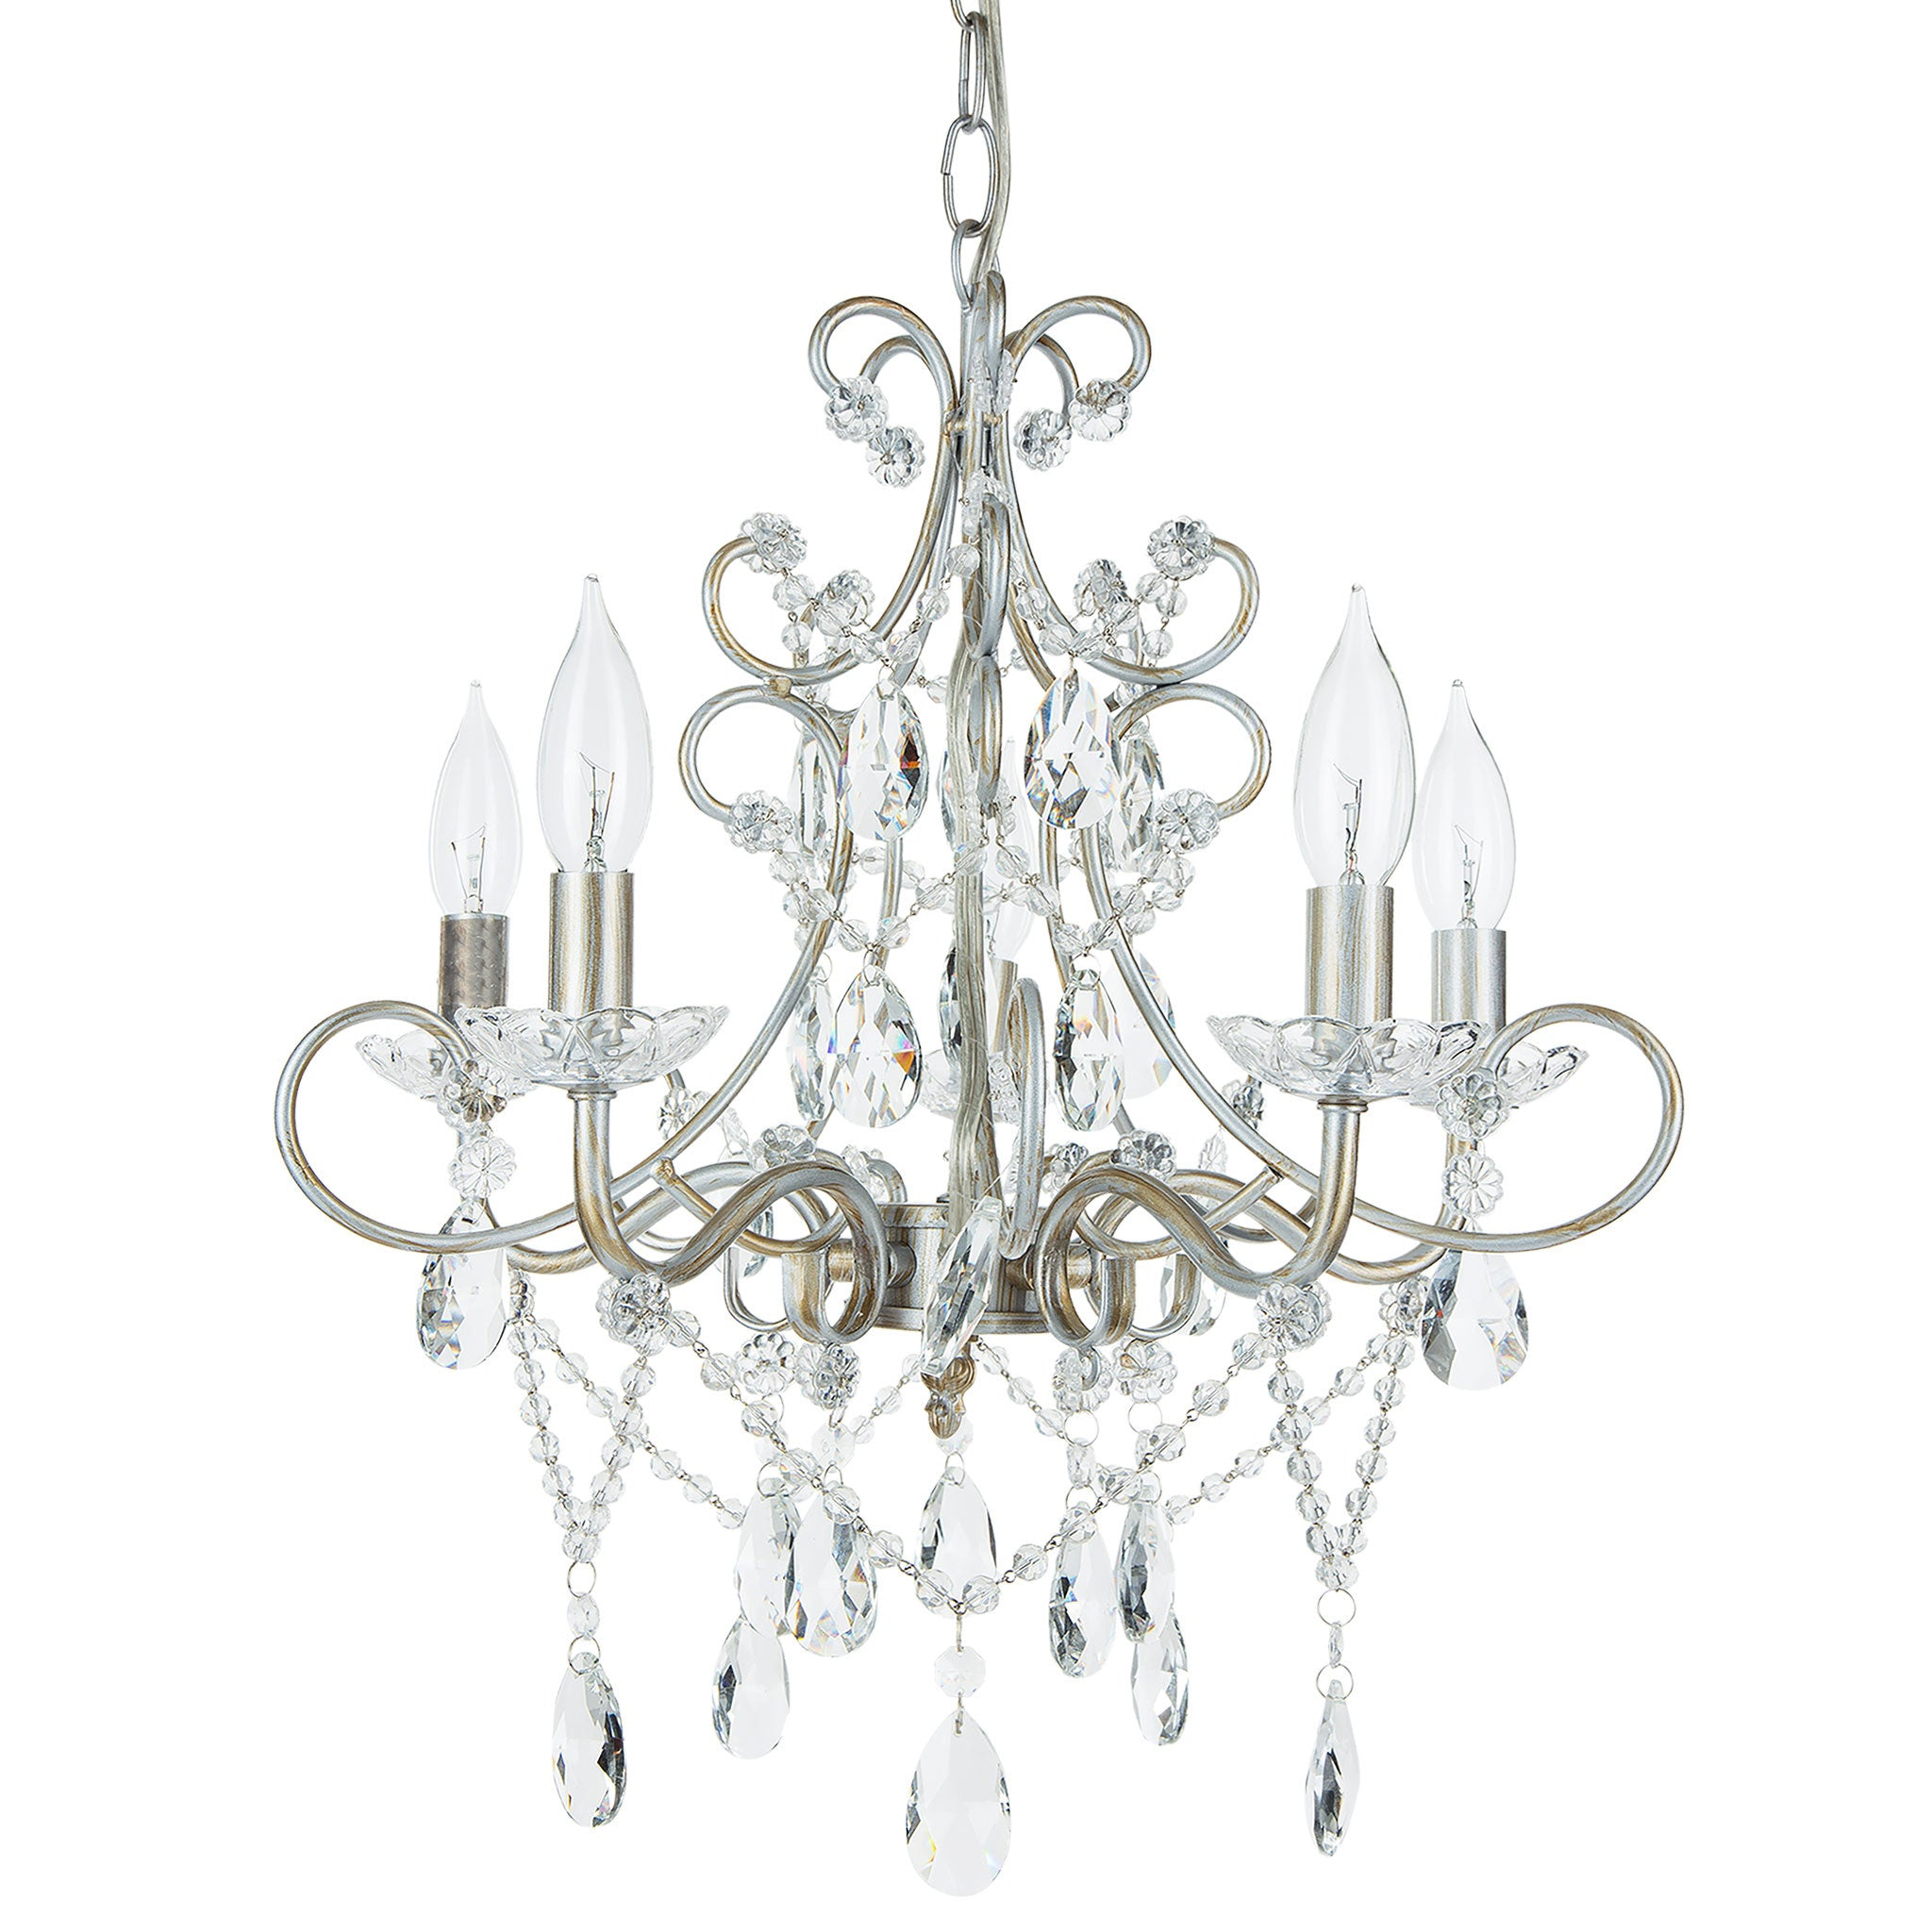 Amalfi Decor 5 Light Classic Crystal Plug-In Chandelier (Silver) | Wrought Iron Frame with Glass Crystals